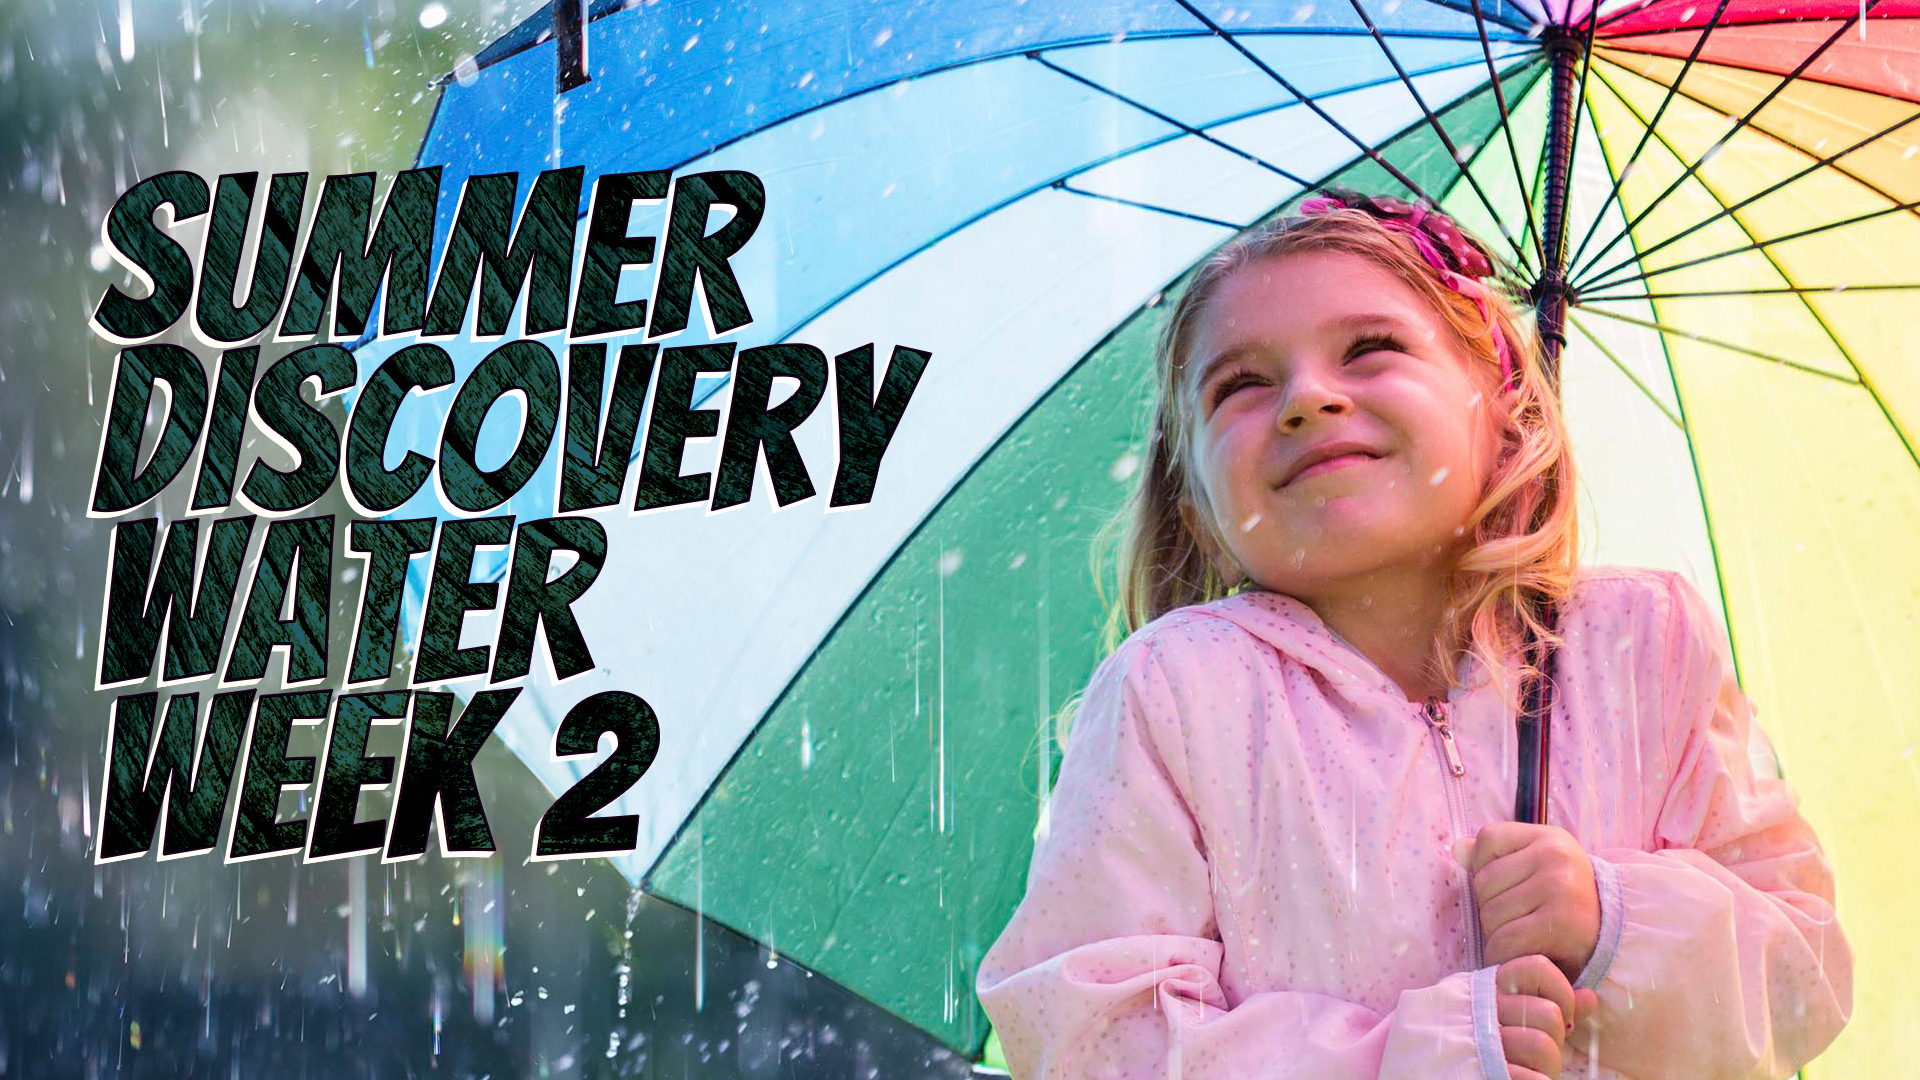 Summer discovery guide opens in a new window Opens in new window